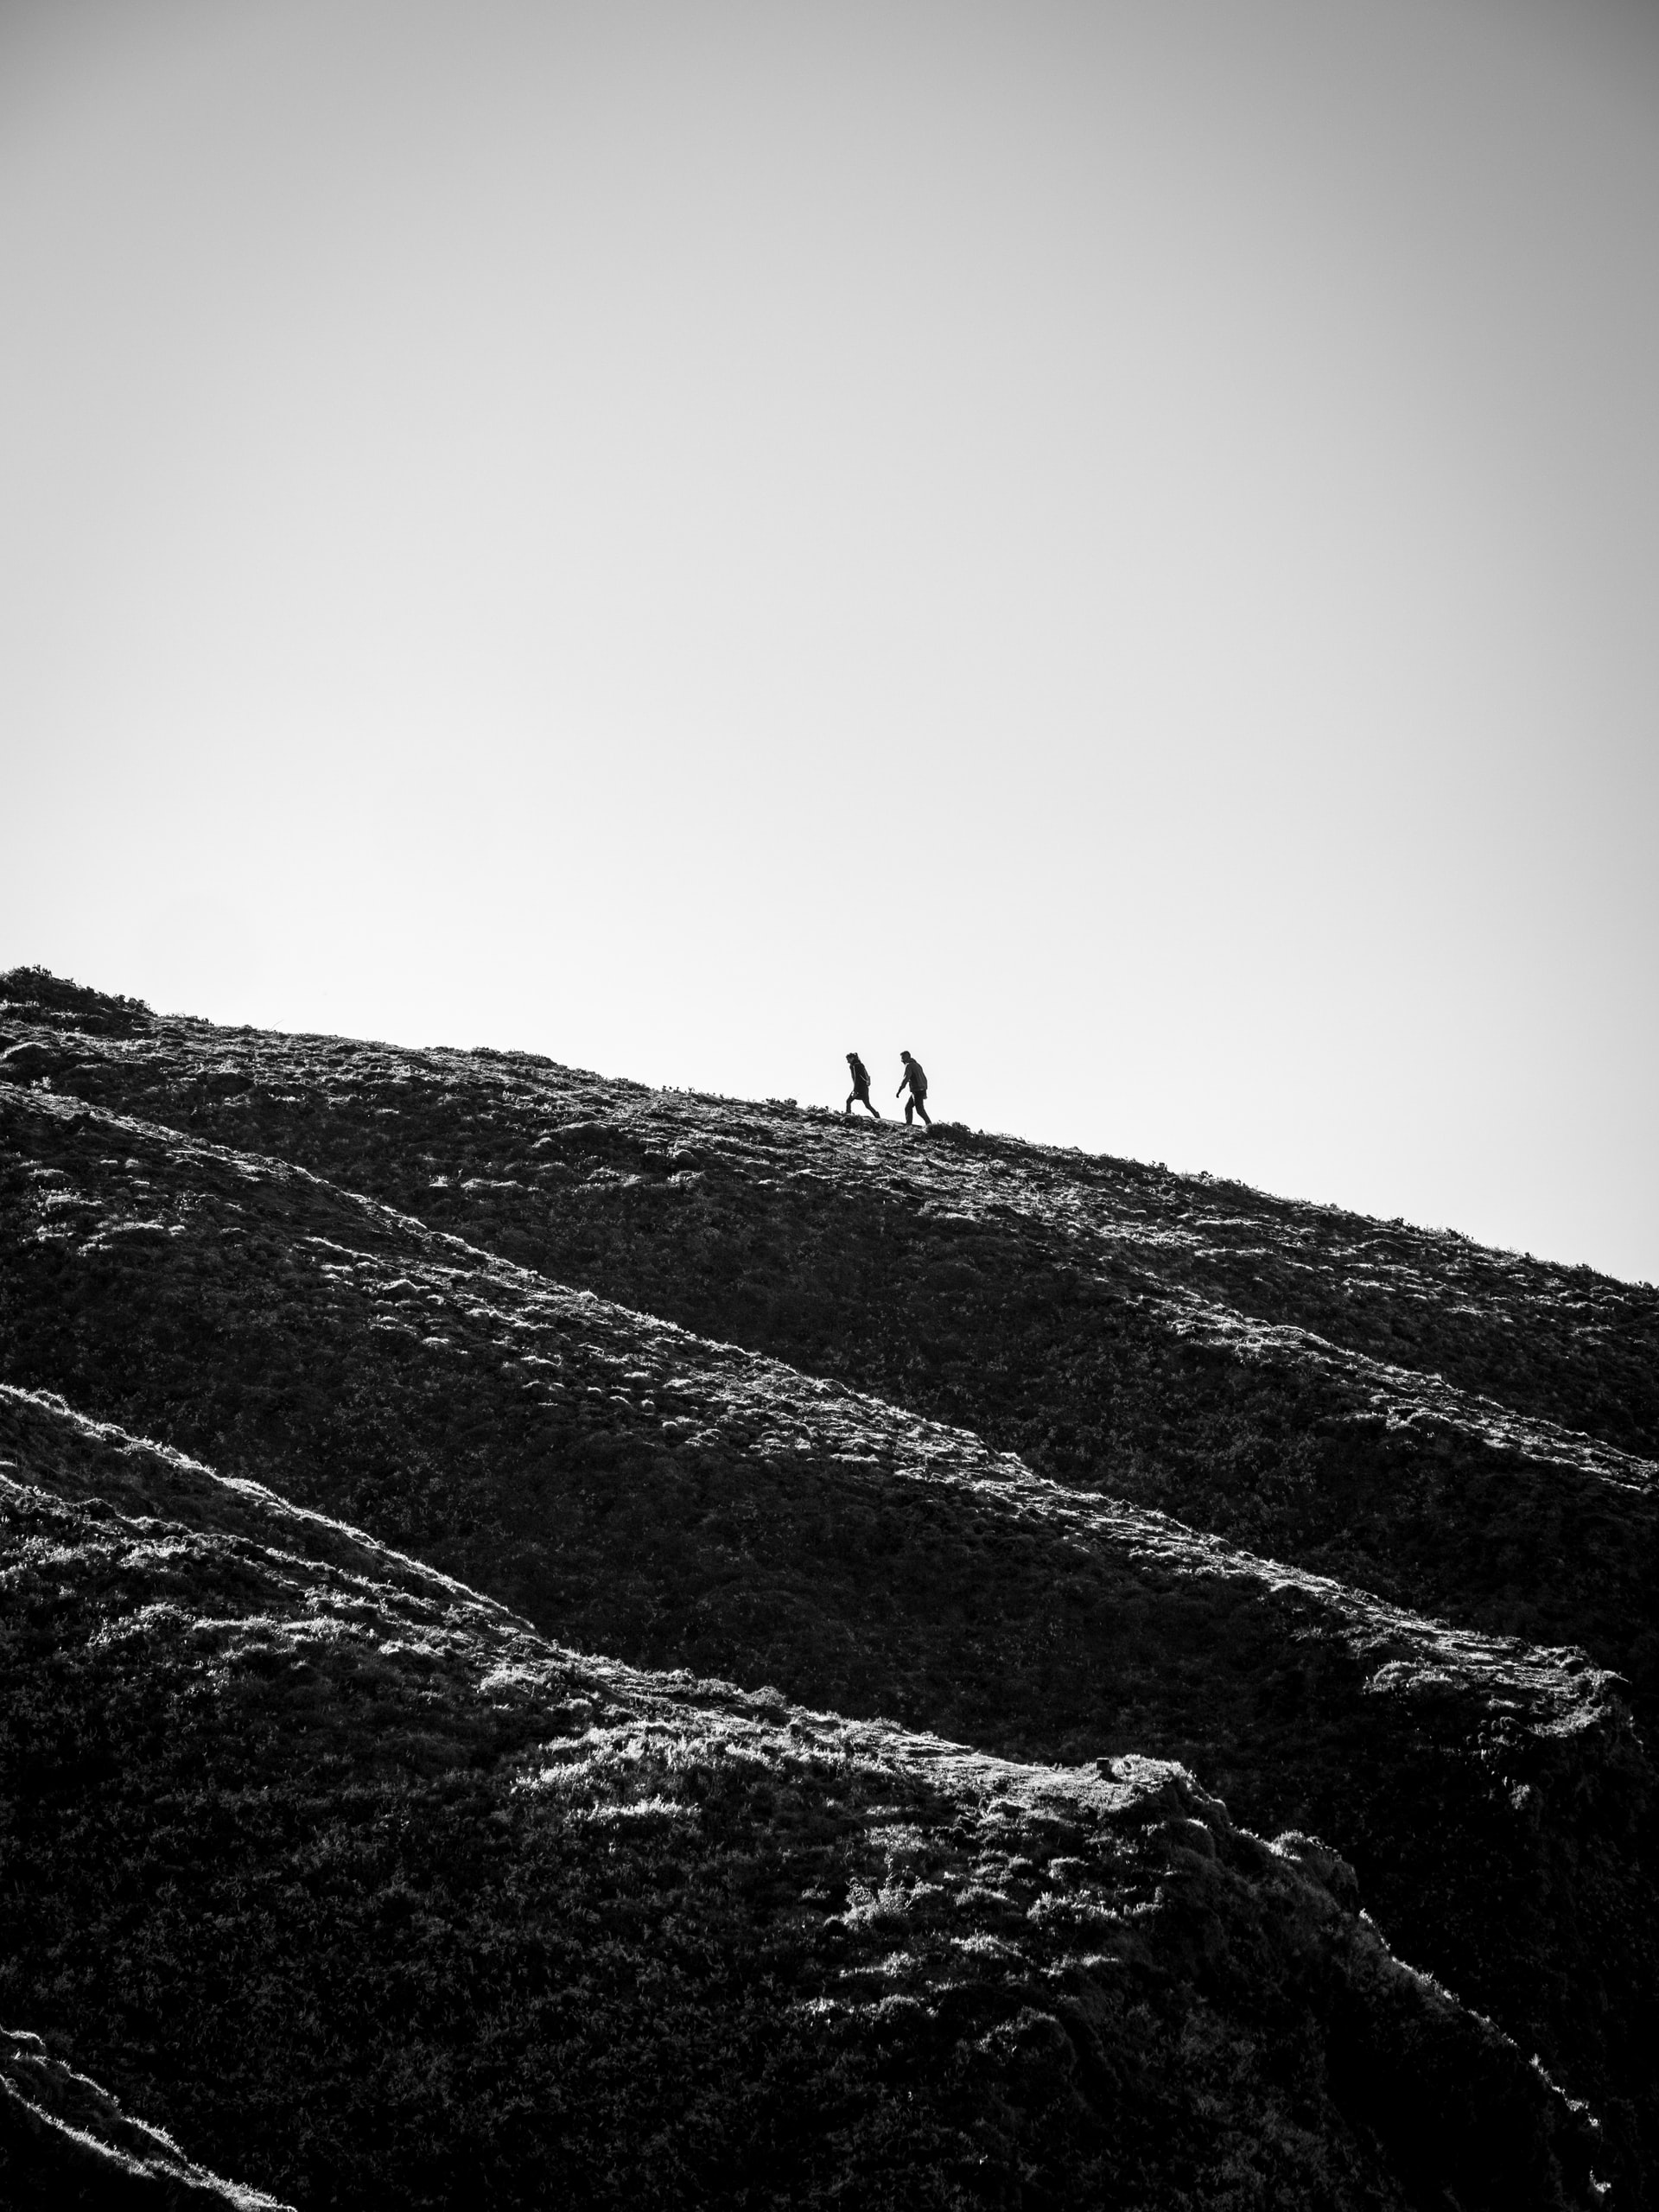 People hiking on hill